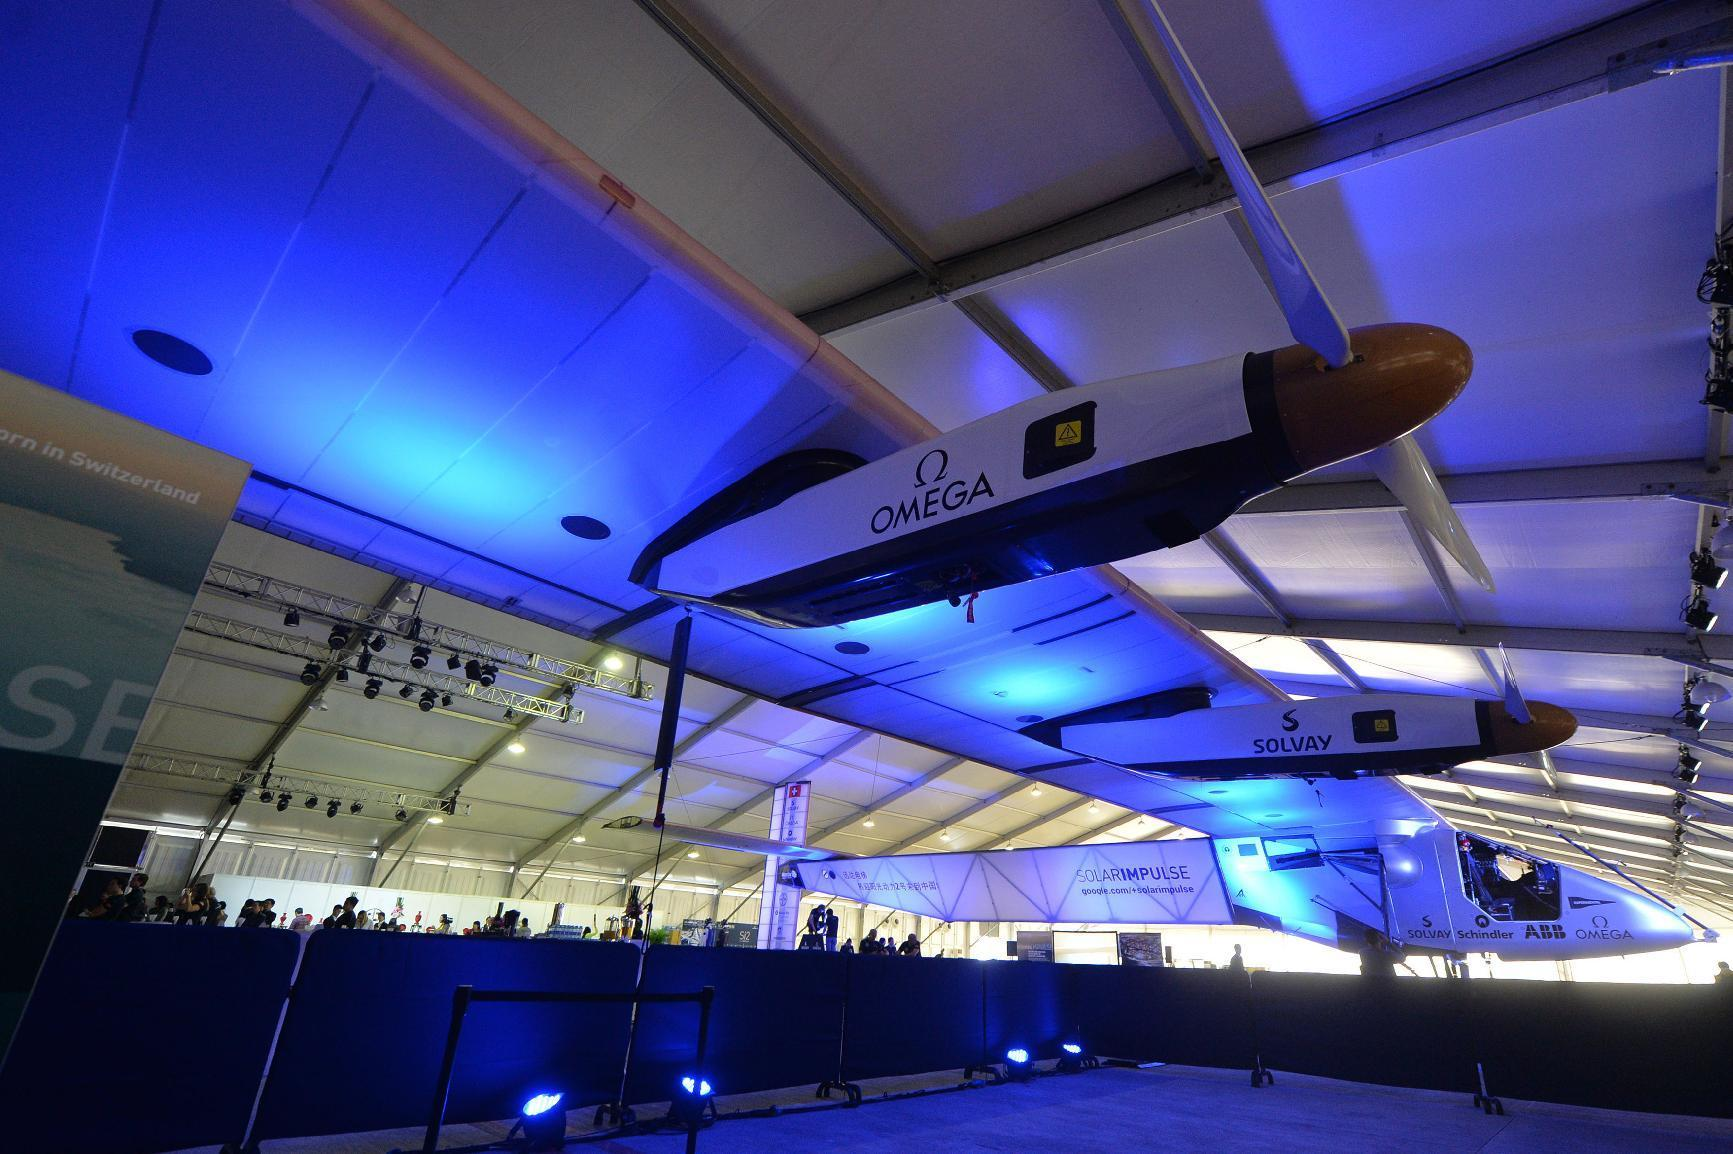 Toughest leg of Solar Impulse's global journey delayed